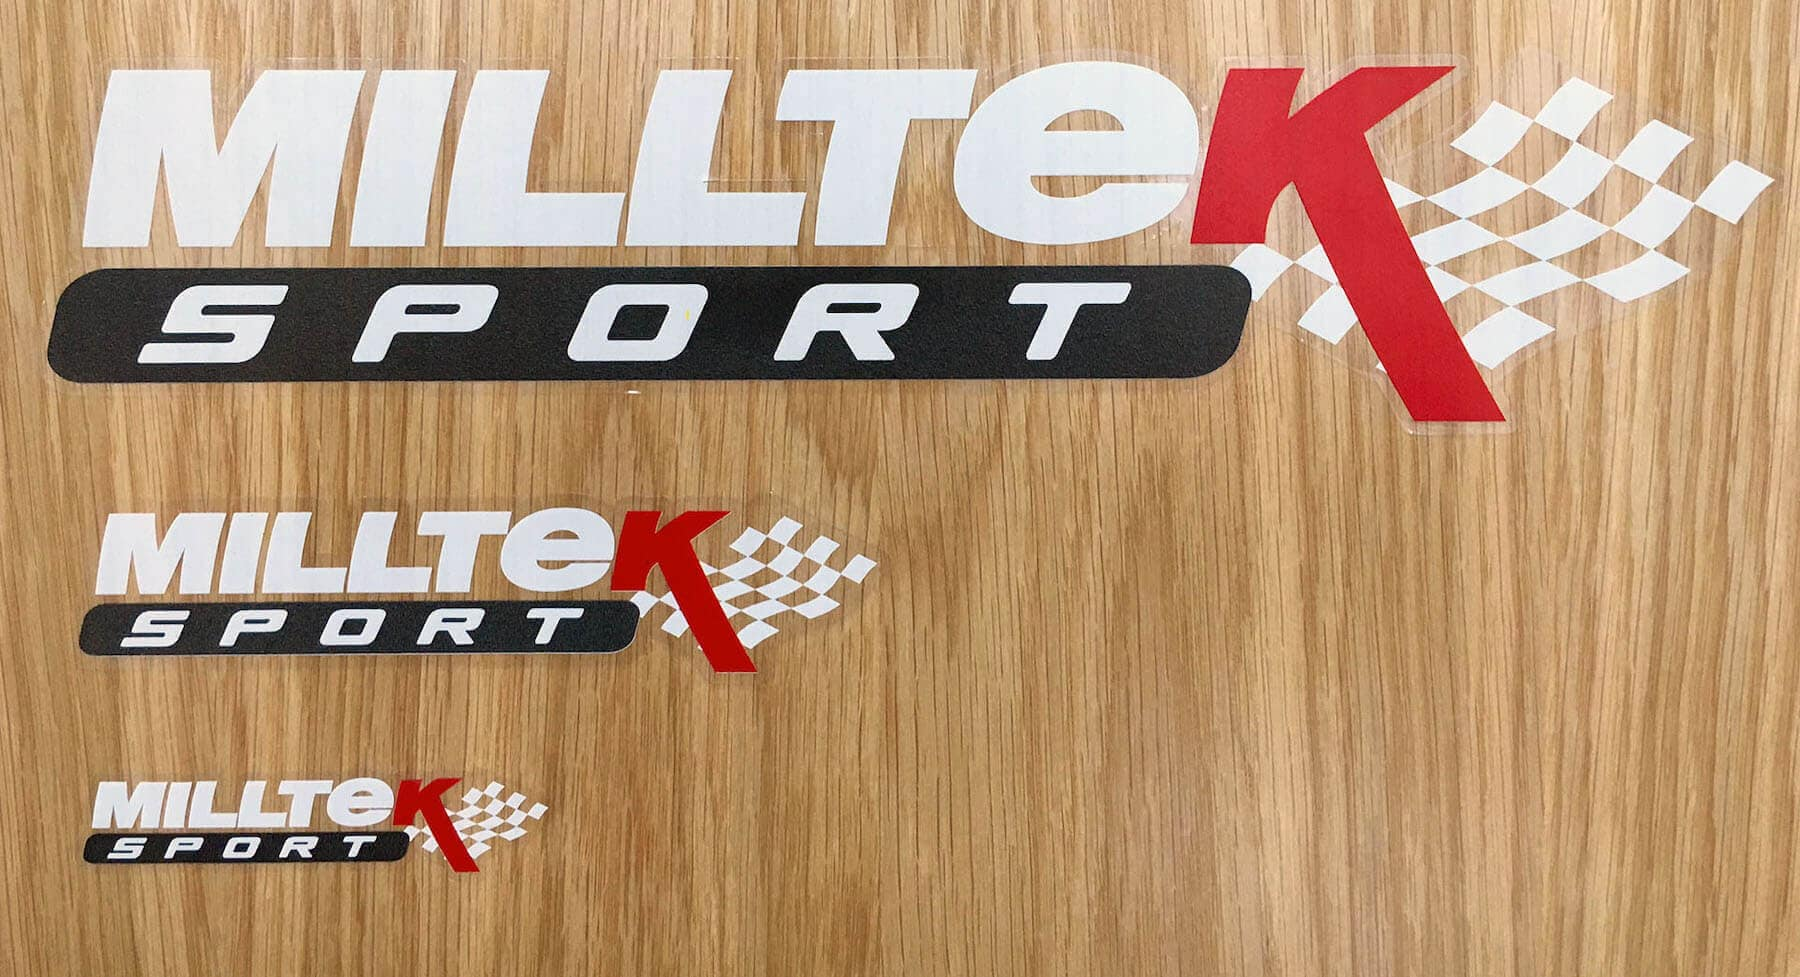 Milltek Sport Sticker Pack Full Sticker Pack Fan Owner Stickers Decals Emblems Logos 'White'